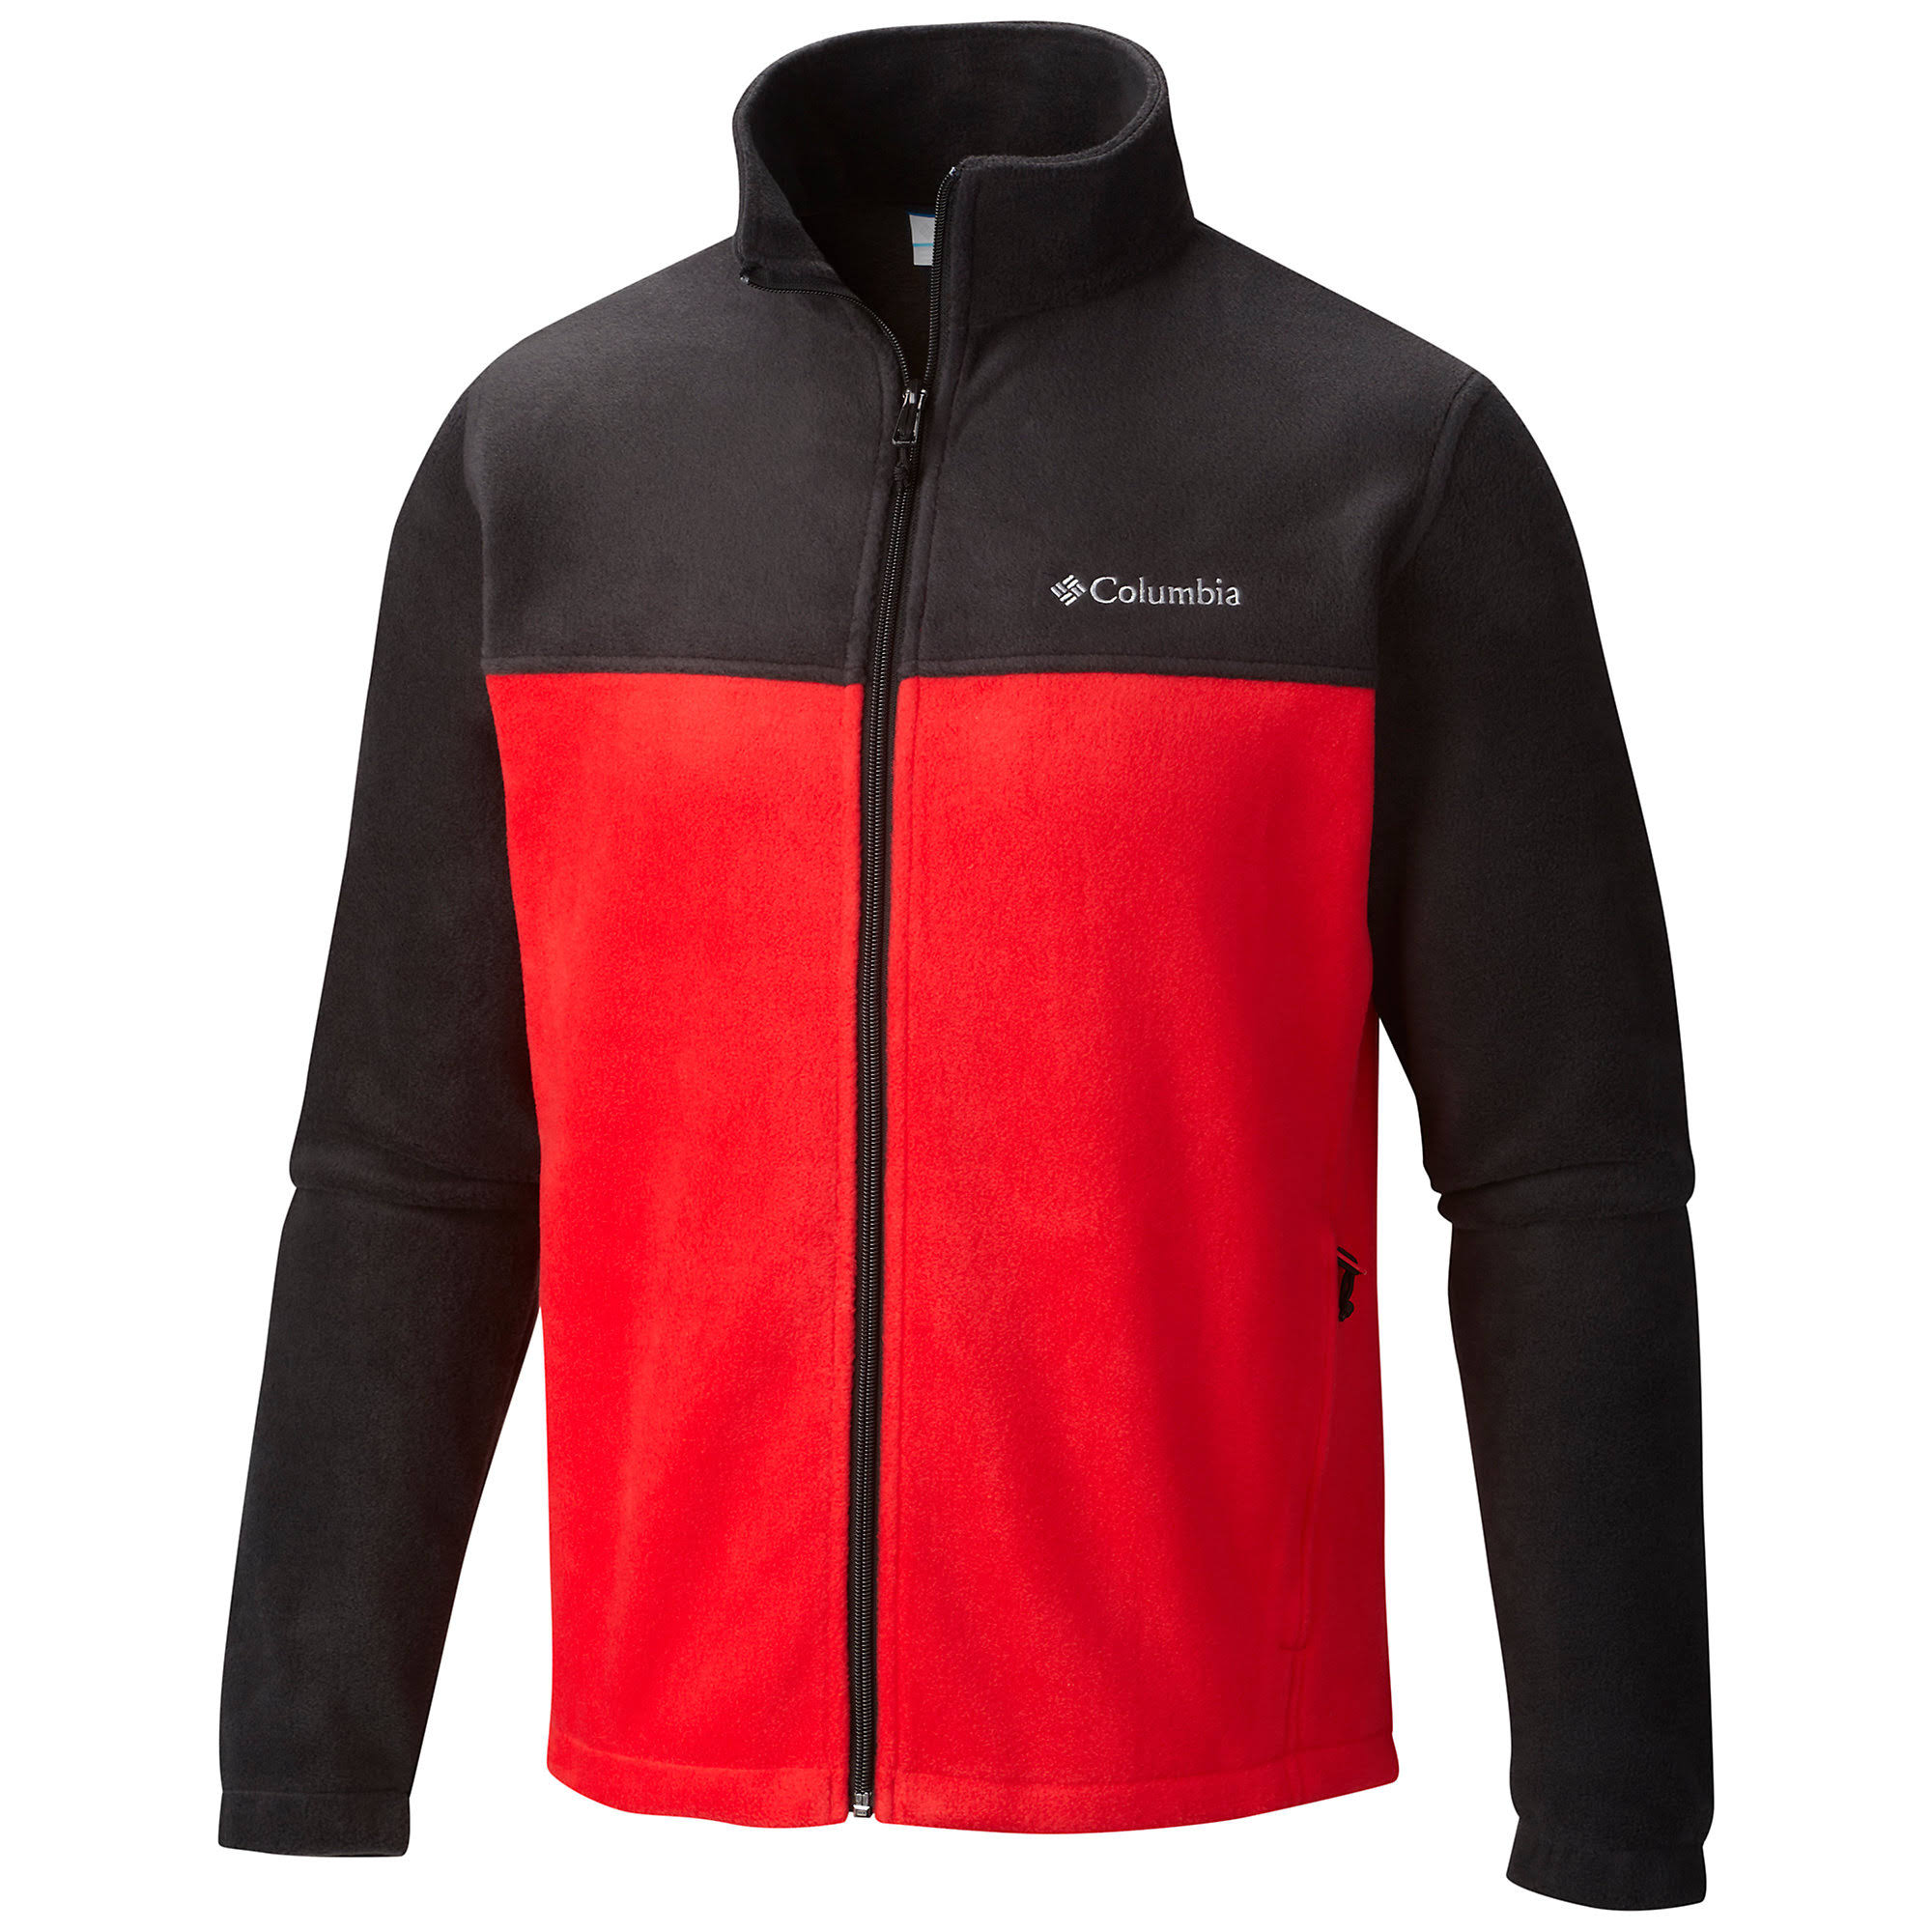 Columbia Men's Black/Red Steens Mountain Full-Zip Fleece